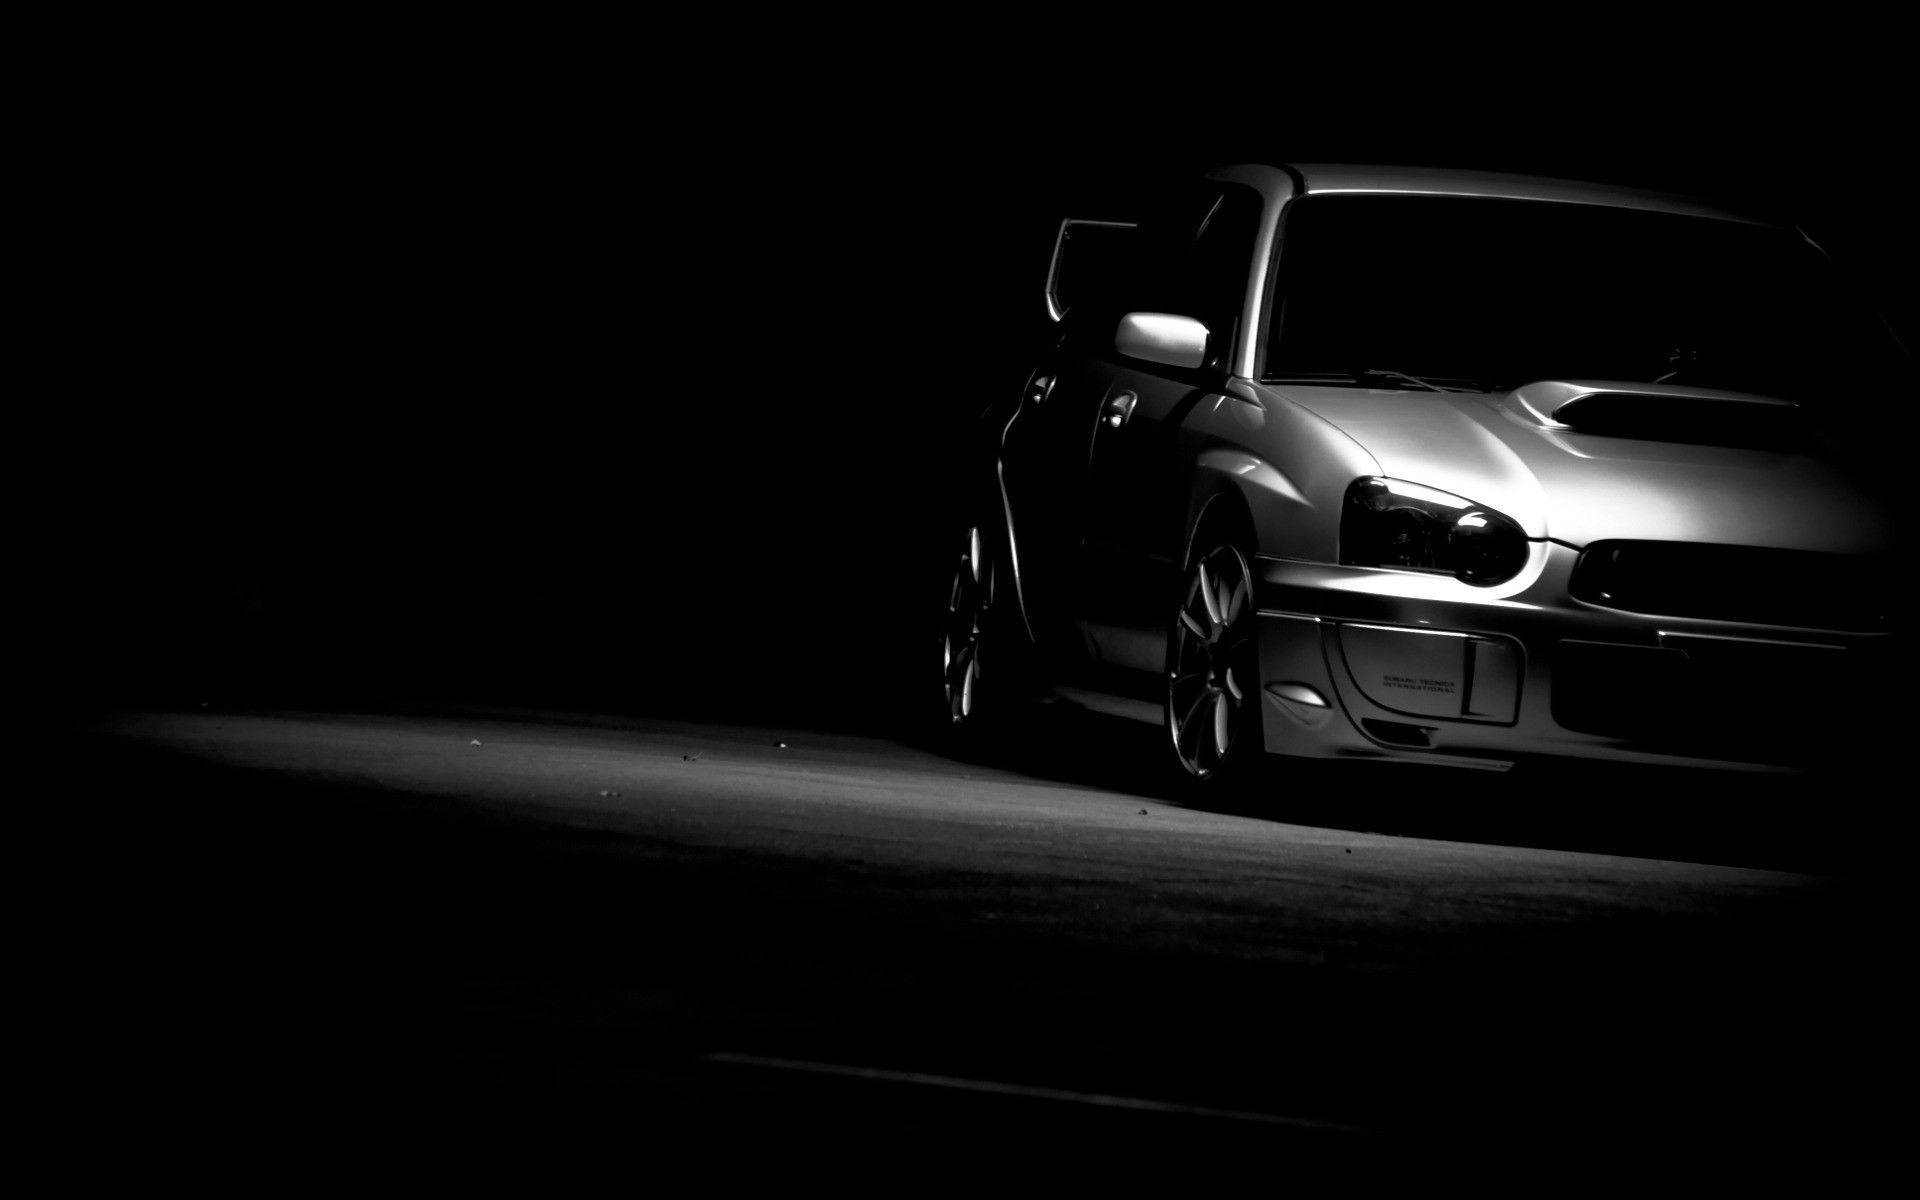 Res: 1920x1200, Subaru Wallpapers Picture